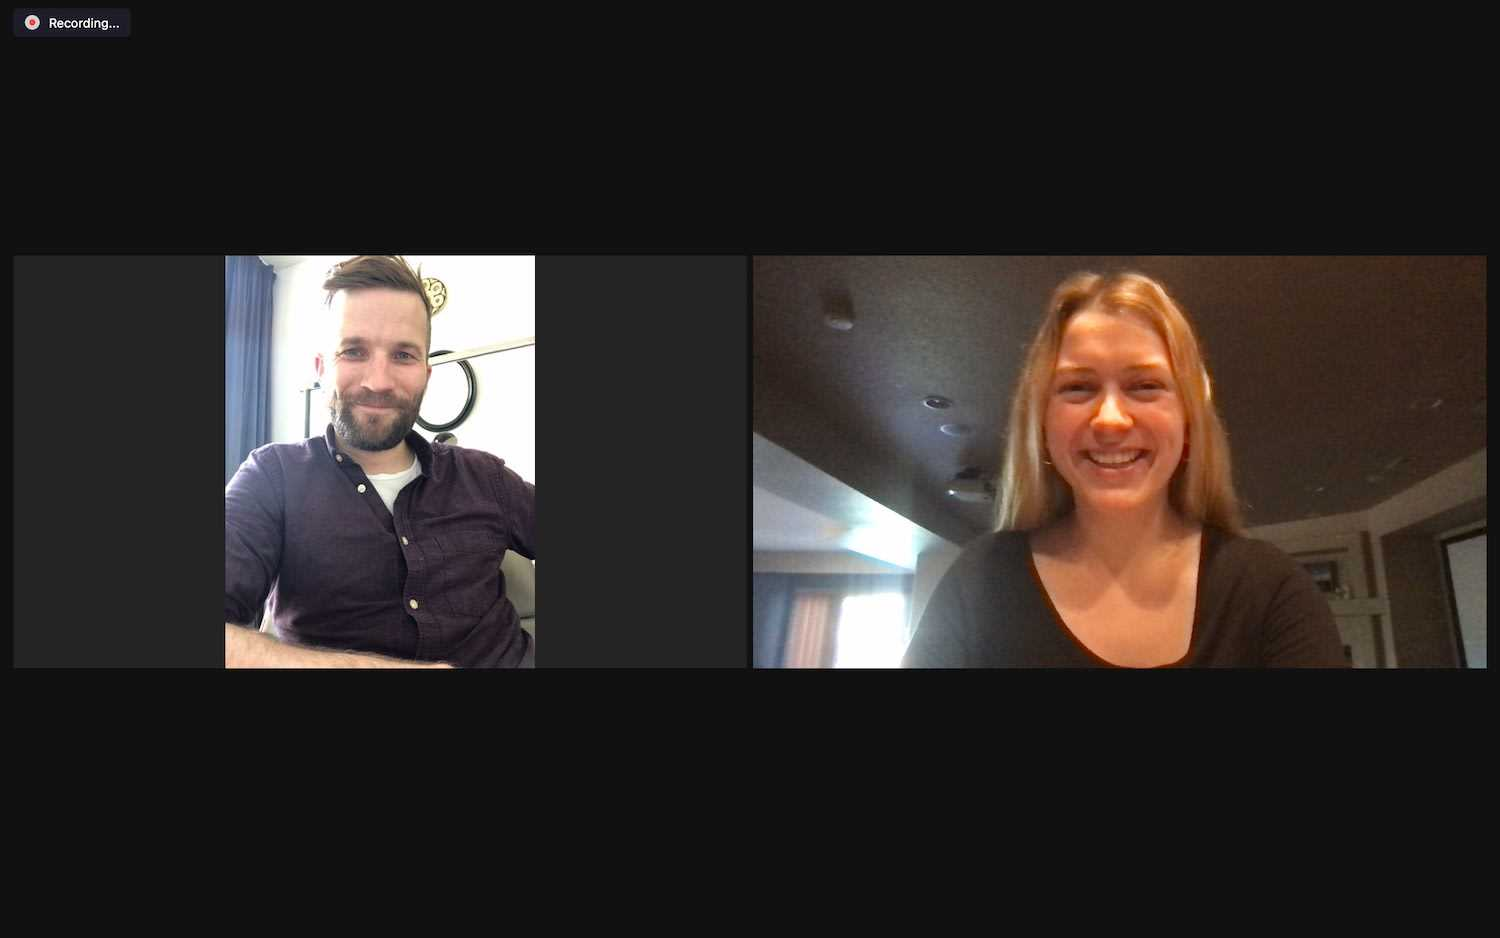 Table Sage interview with Dignita shows Kaitlin Badger with Marijn Vegter